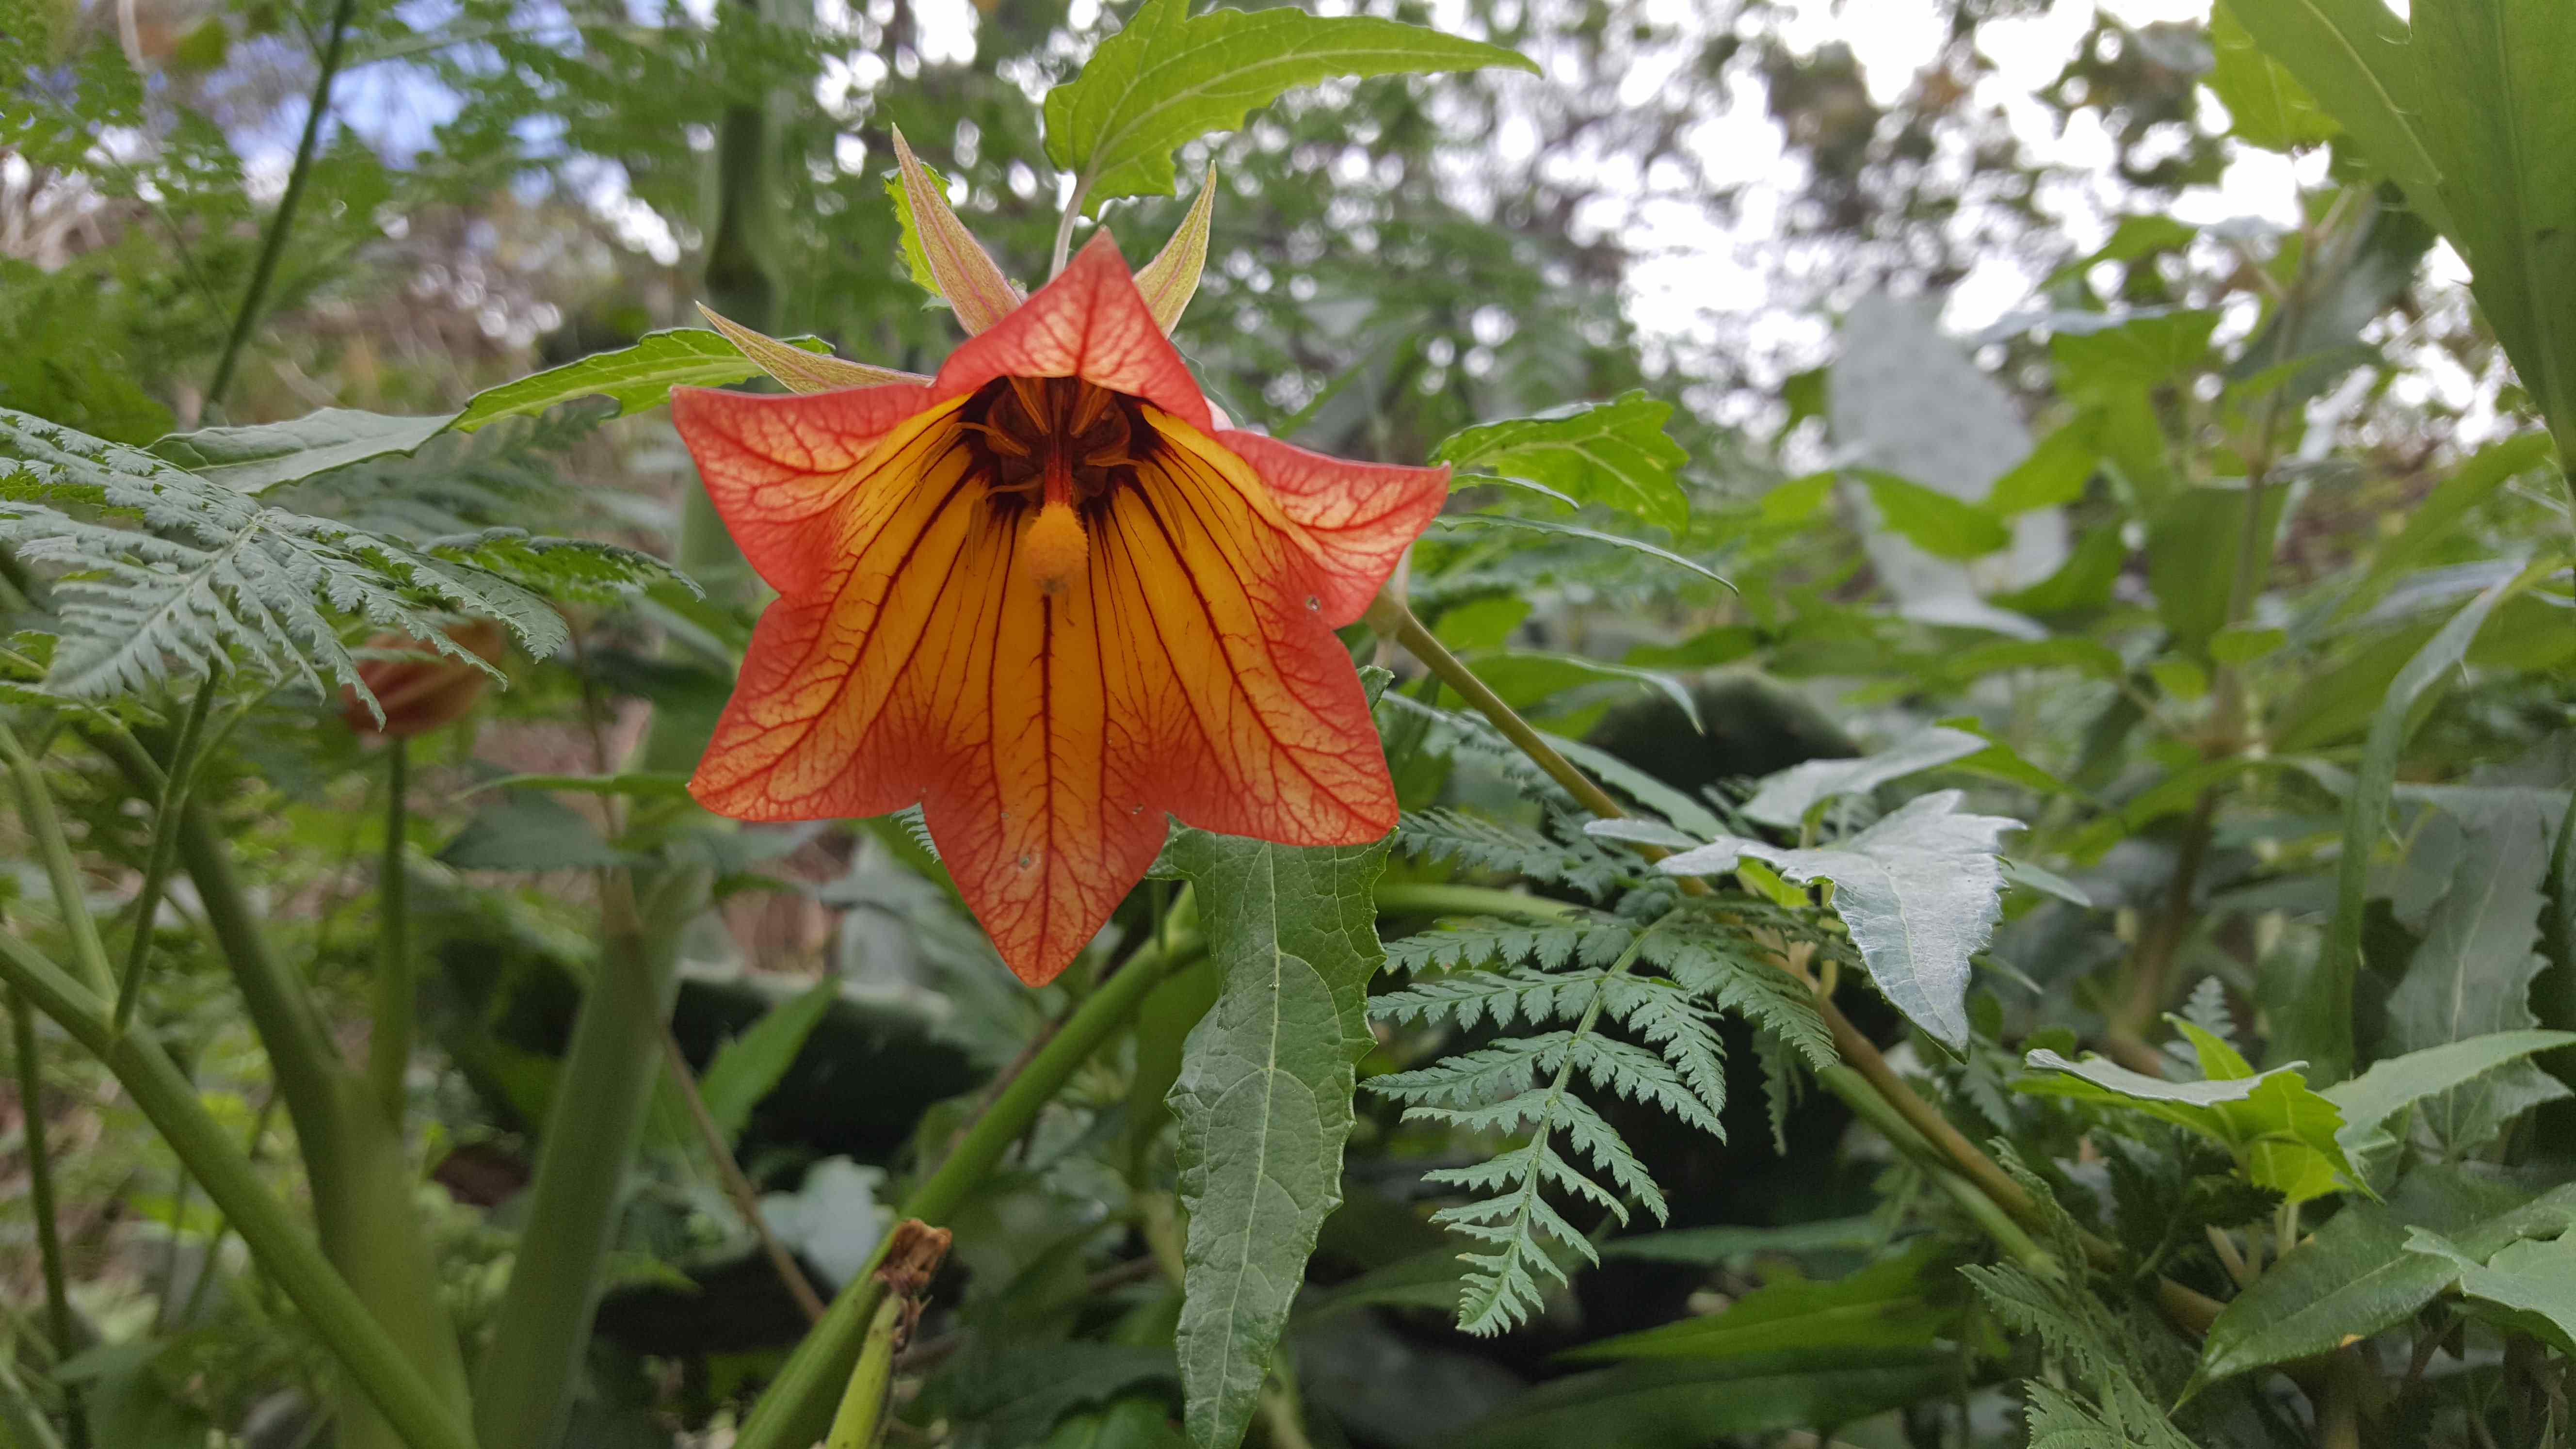 Red and orange flower surrounded by other leafs